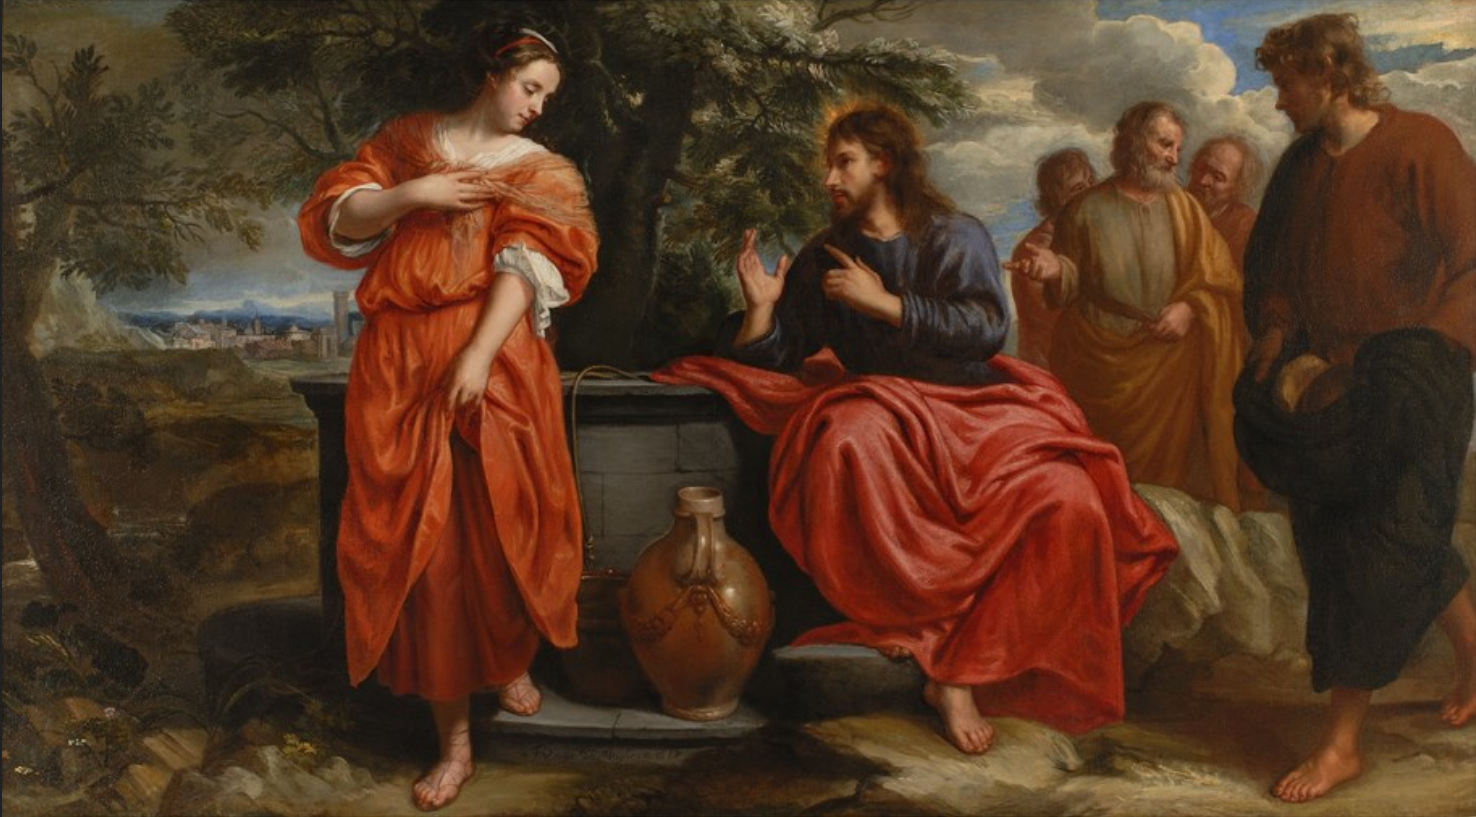 https://i2.wp.com/upload.wikimedia.org/wikipedia/commons/8/8c/Jacob_van_Oost_%28II%29_-_Christ_and_the_Samaritan_Woman_at_the_Well.jpg